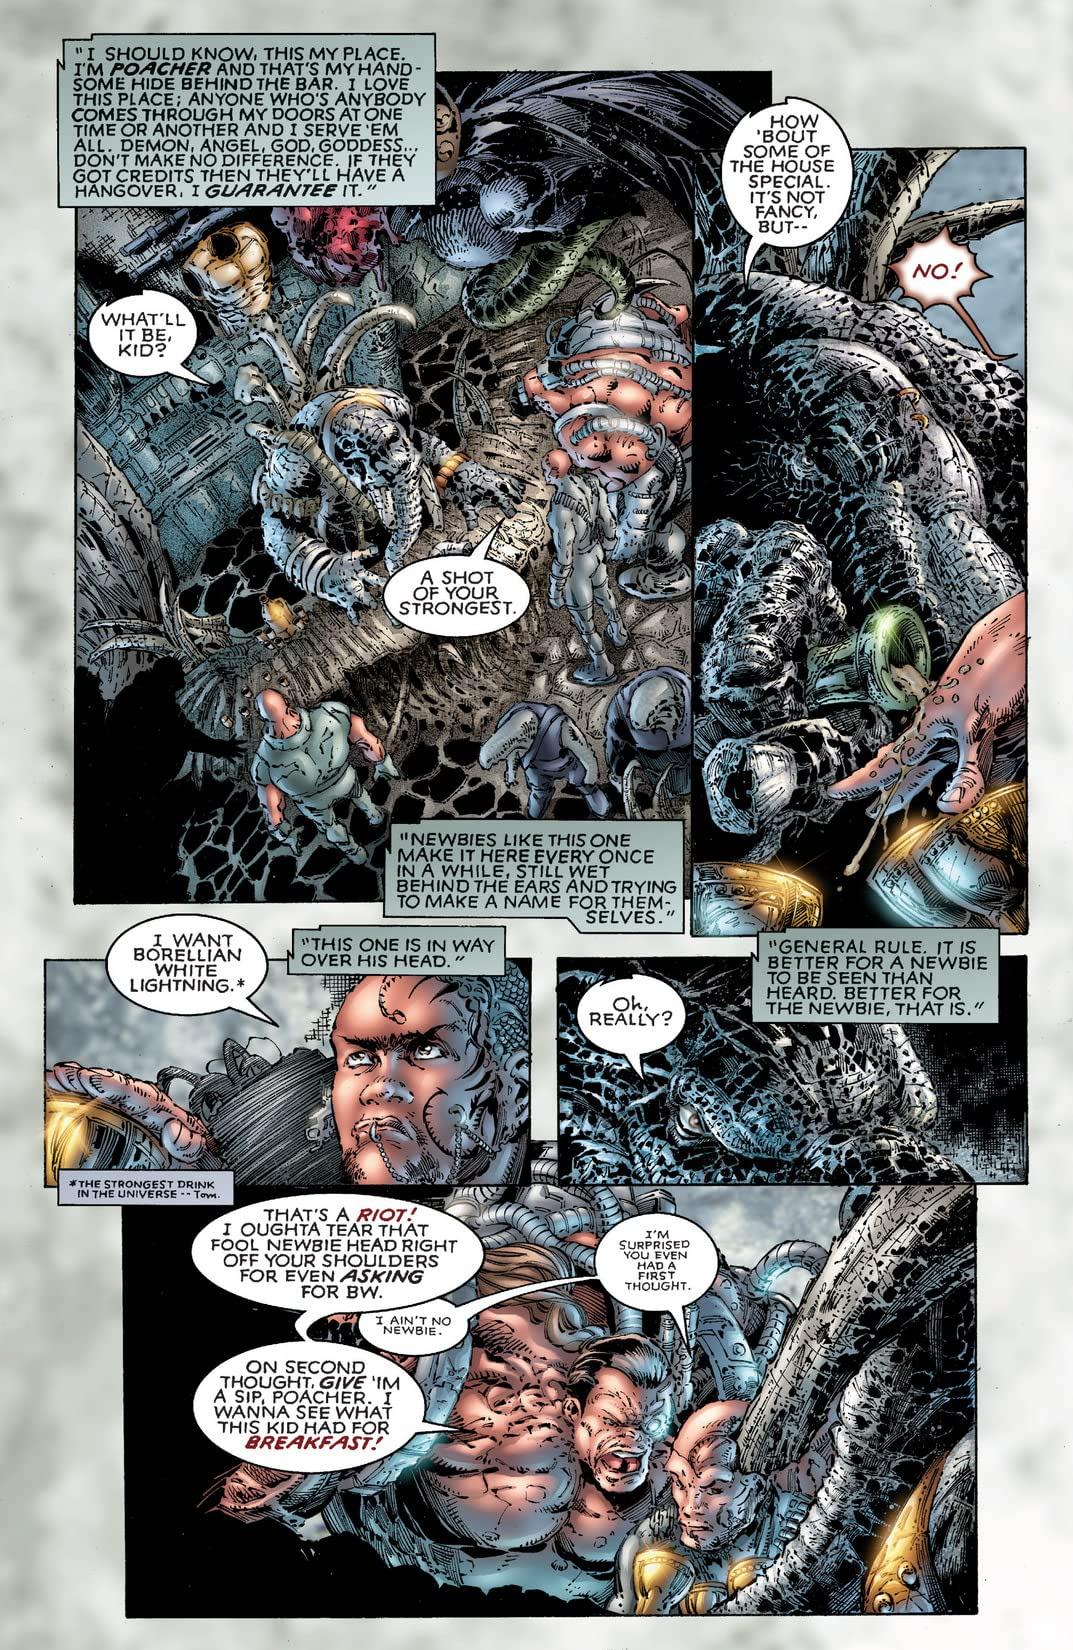 Curse of the Spawn #15